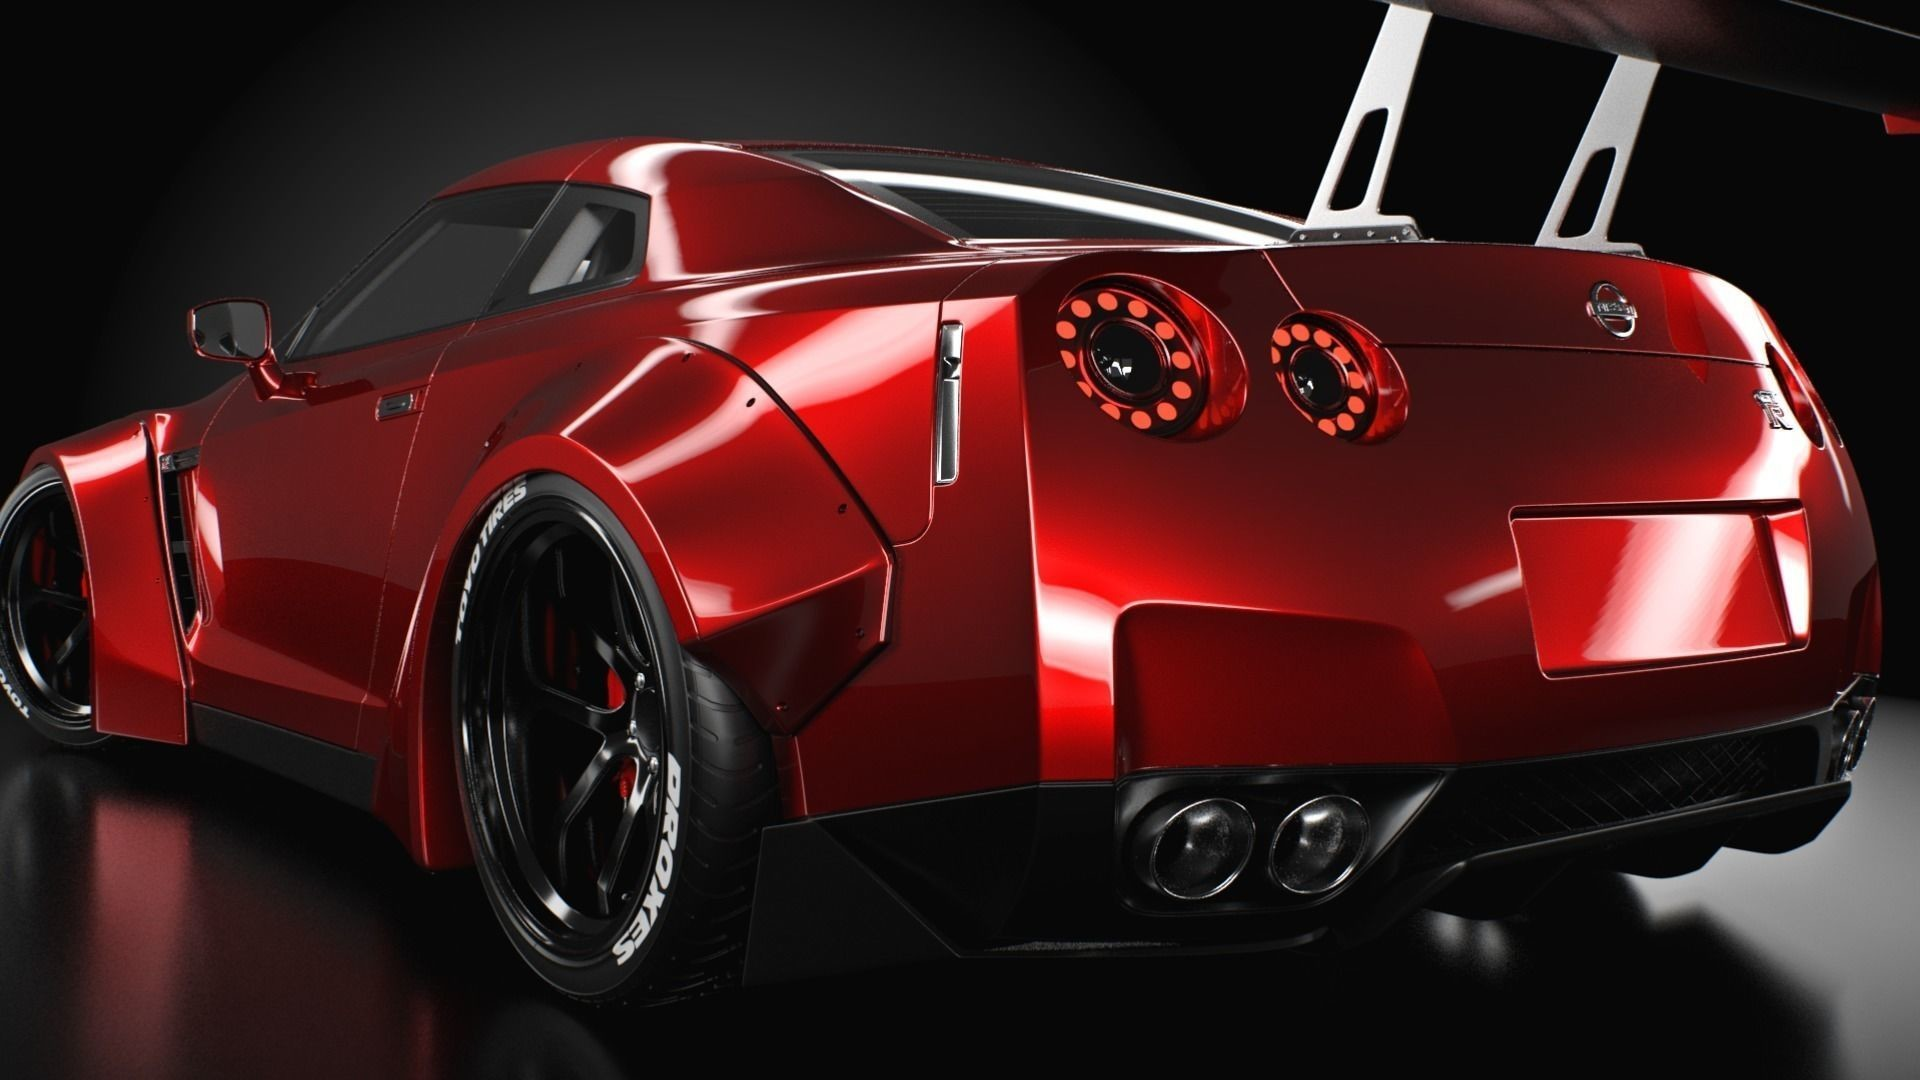 1920x1080 ... nissan gt-r liberty walk 3d model obj 3ds fbx c4d 2 ...